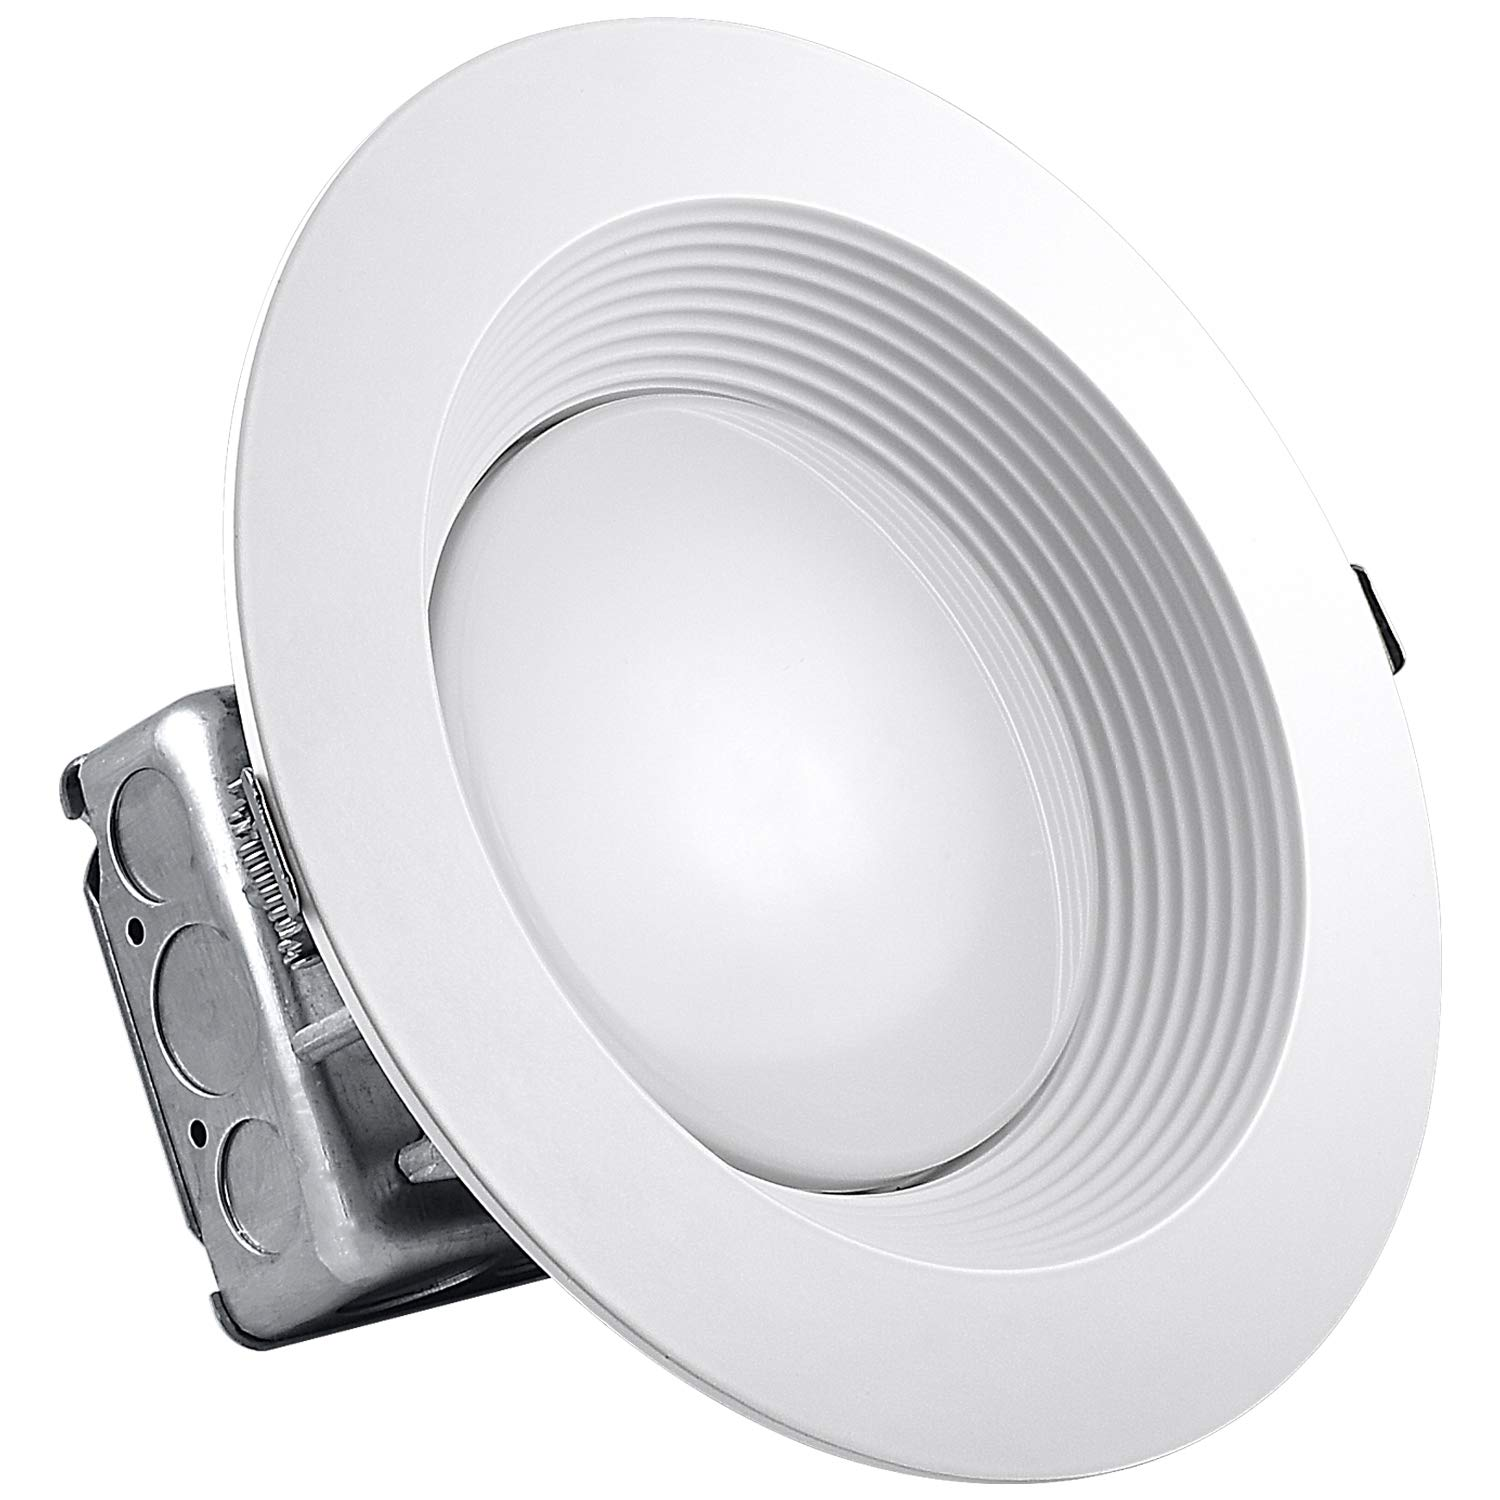 Luxrite 8 Inch Junction Box LED Downlight, 25W (150W Equivalent), 5000K Bright White, Energy Star, 2200 Lumens, Wet Rated, Recessed Ceiling Light, 120-277V, No Can Needed, ETL Listed, 1-Piece